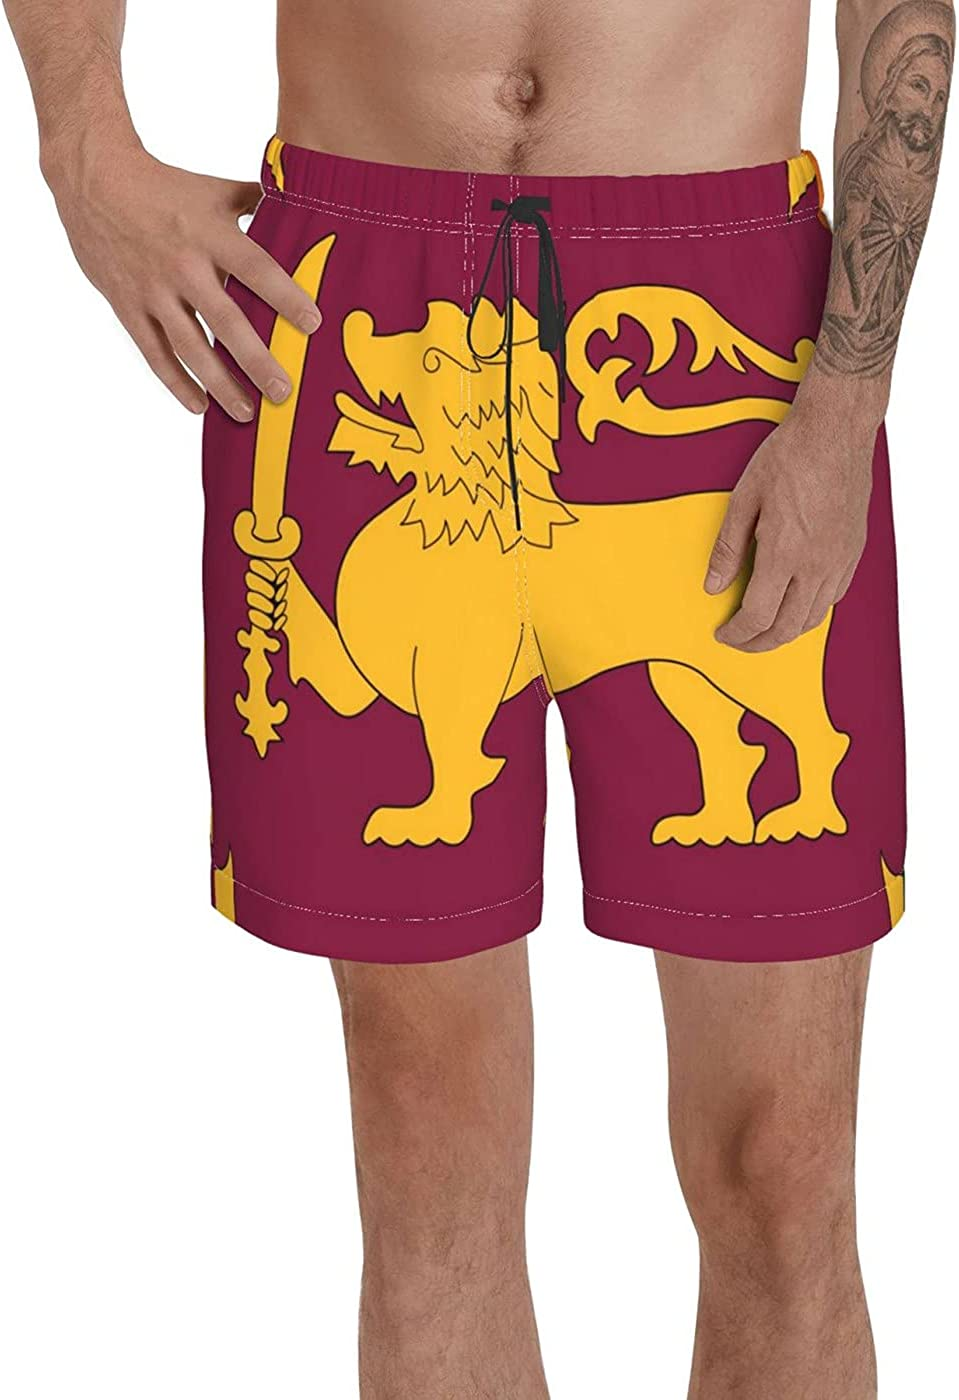 Count Sri Lanka Flag Men's 3D Printed Funny Summer Quick Dry Swim Short Board Shorts with